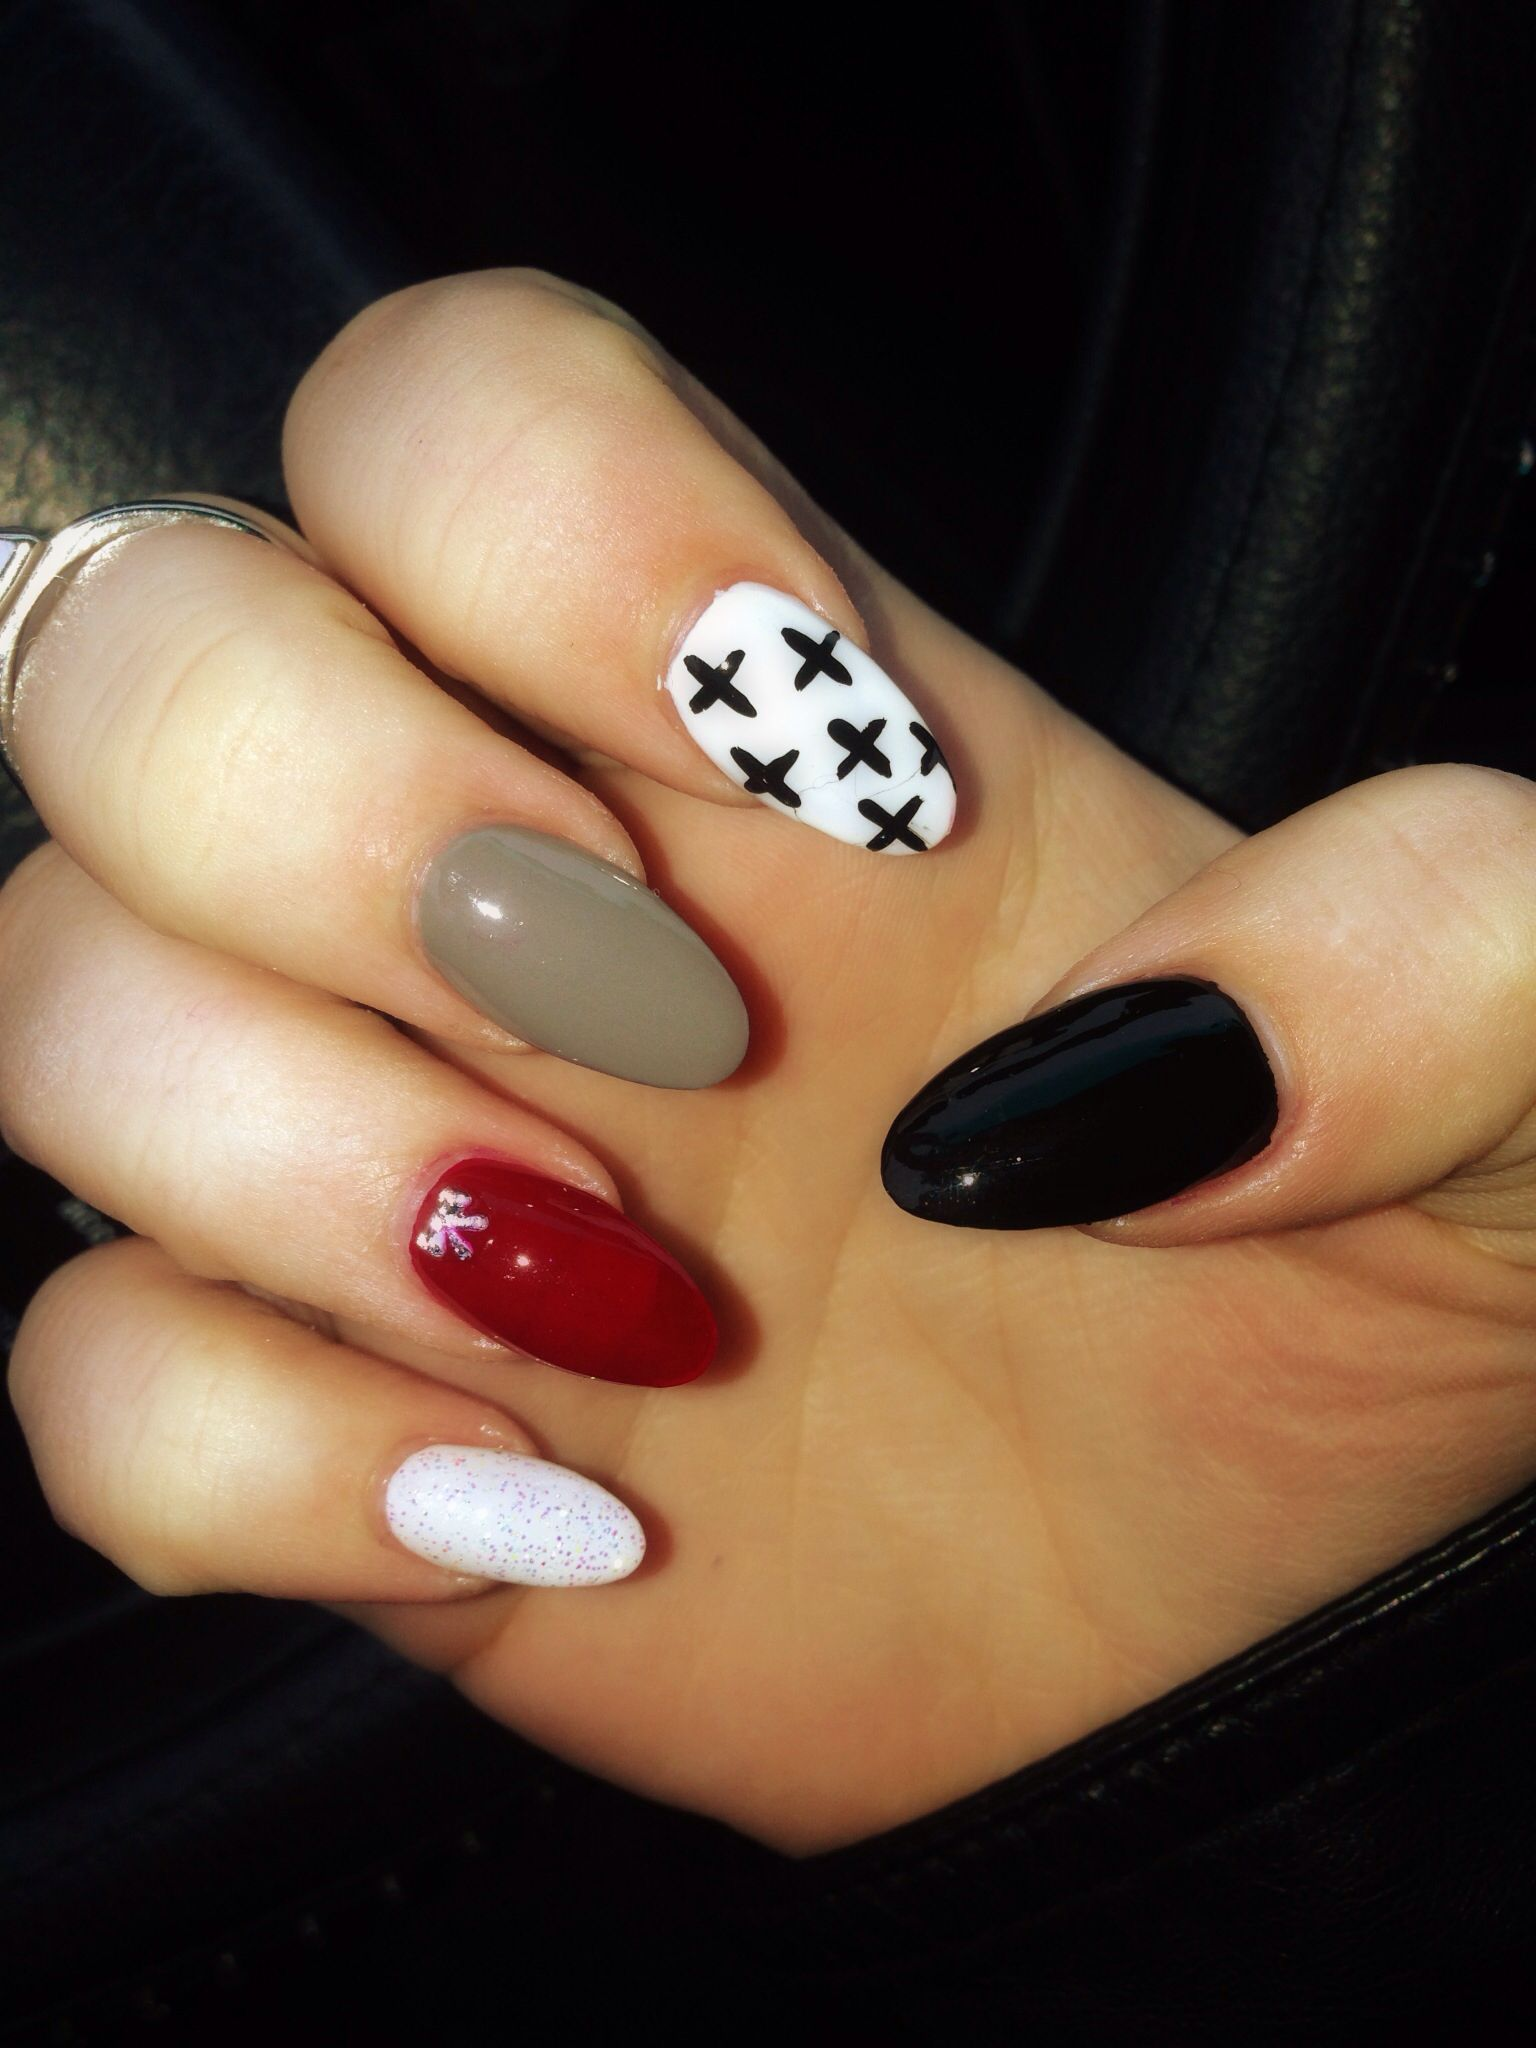 My Fall Nails Crosses With Bow Jewel On Ring Ringer Nails Cute